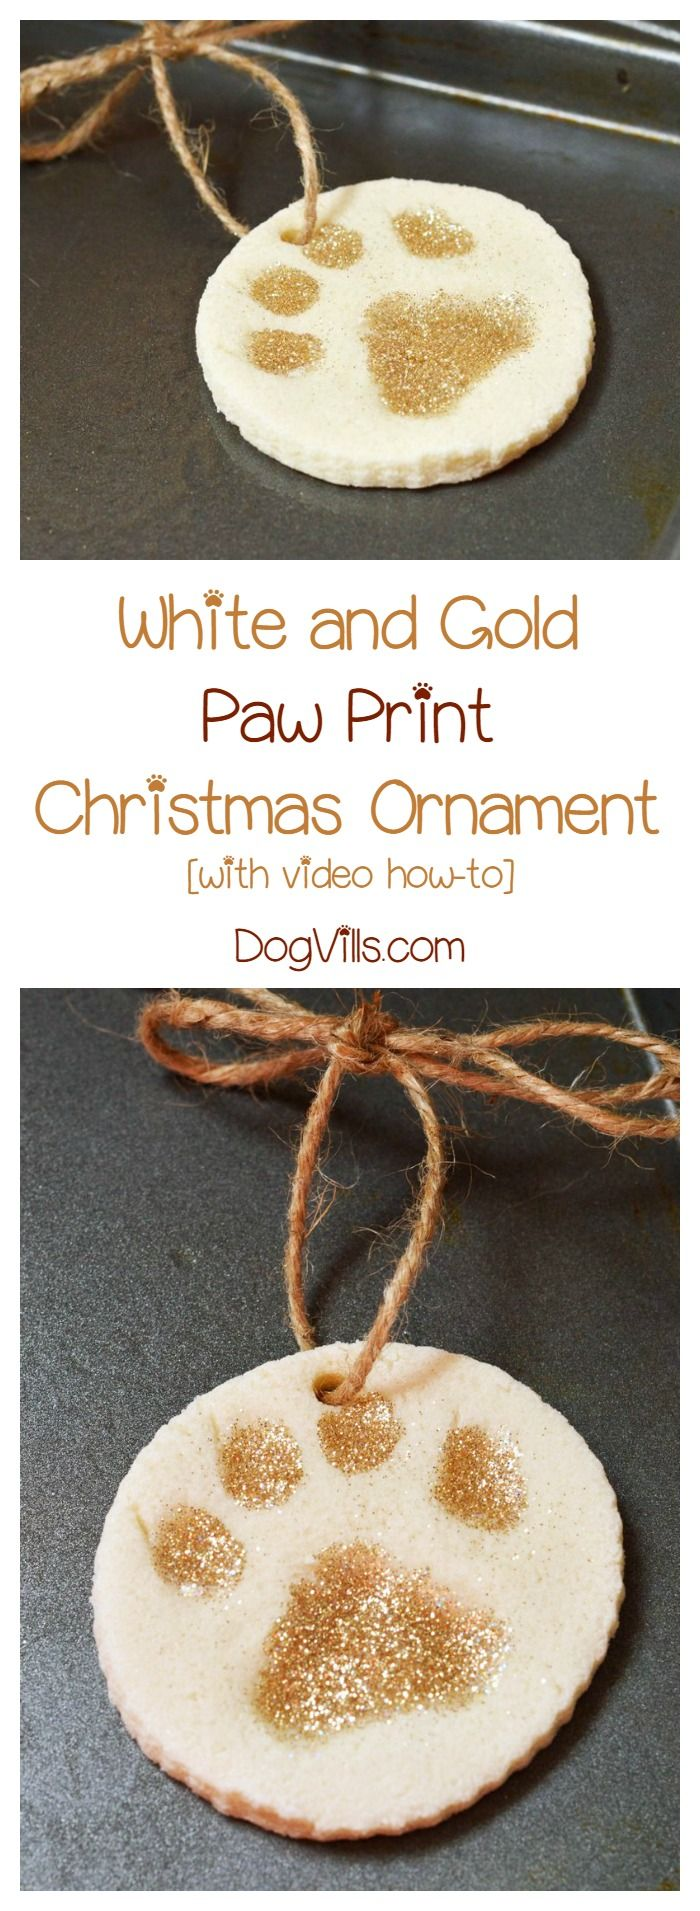 Turn Your Dogsu0027 Paws Into Cute Christmas Decorations With Our Paw Print  Christmas Craft! Makes A Great Homemade Gift Idea Too!